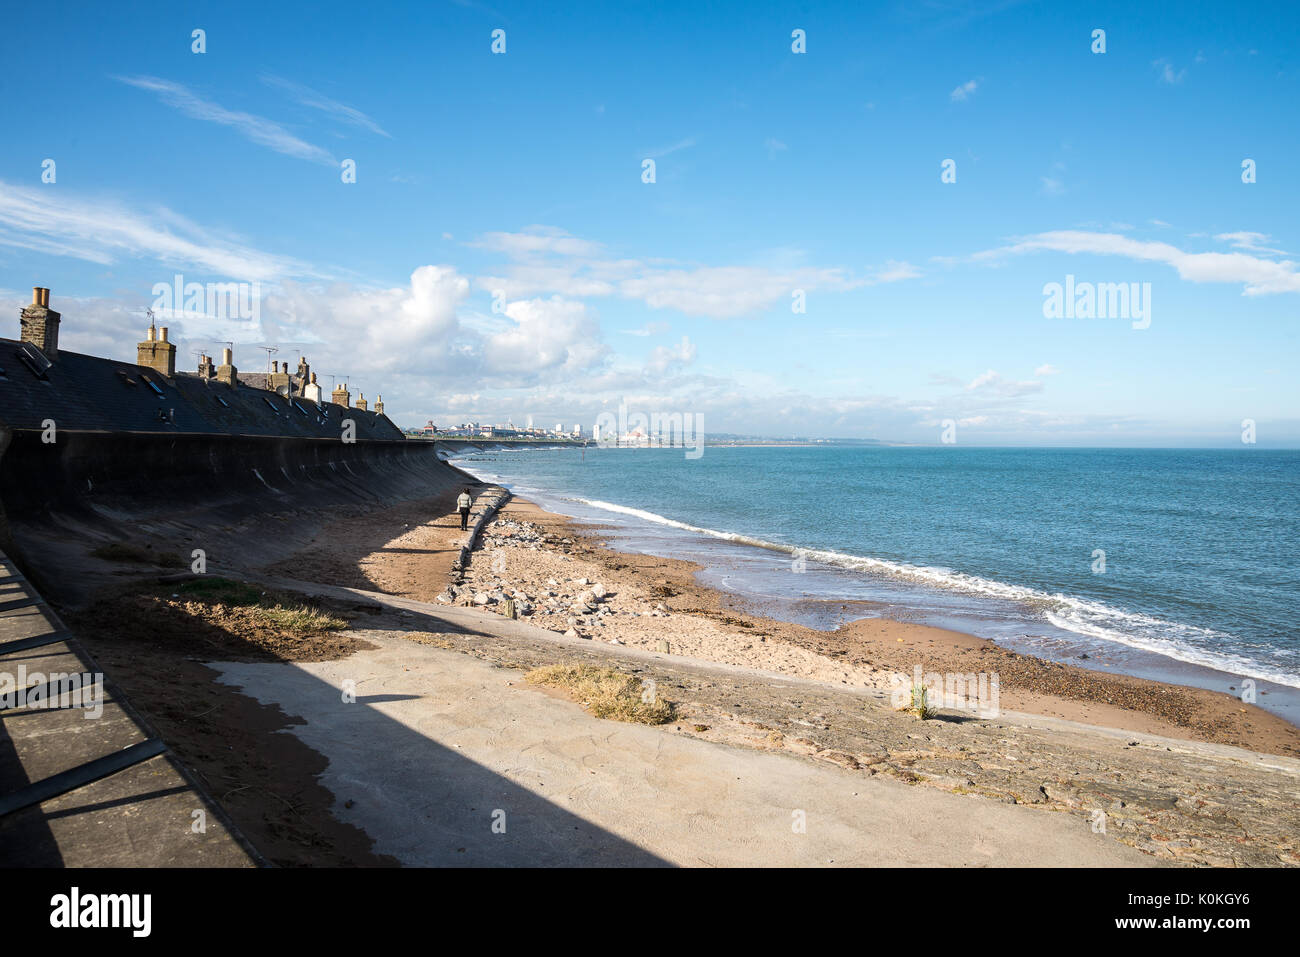 A view of Aberdeen Beach and city in a distance, Scotland - Stock Image